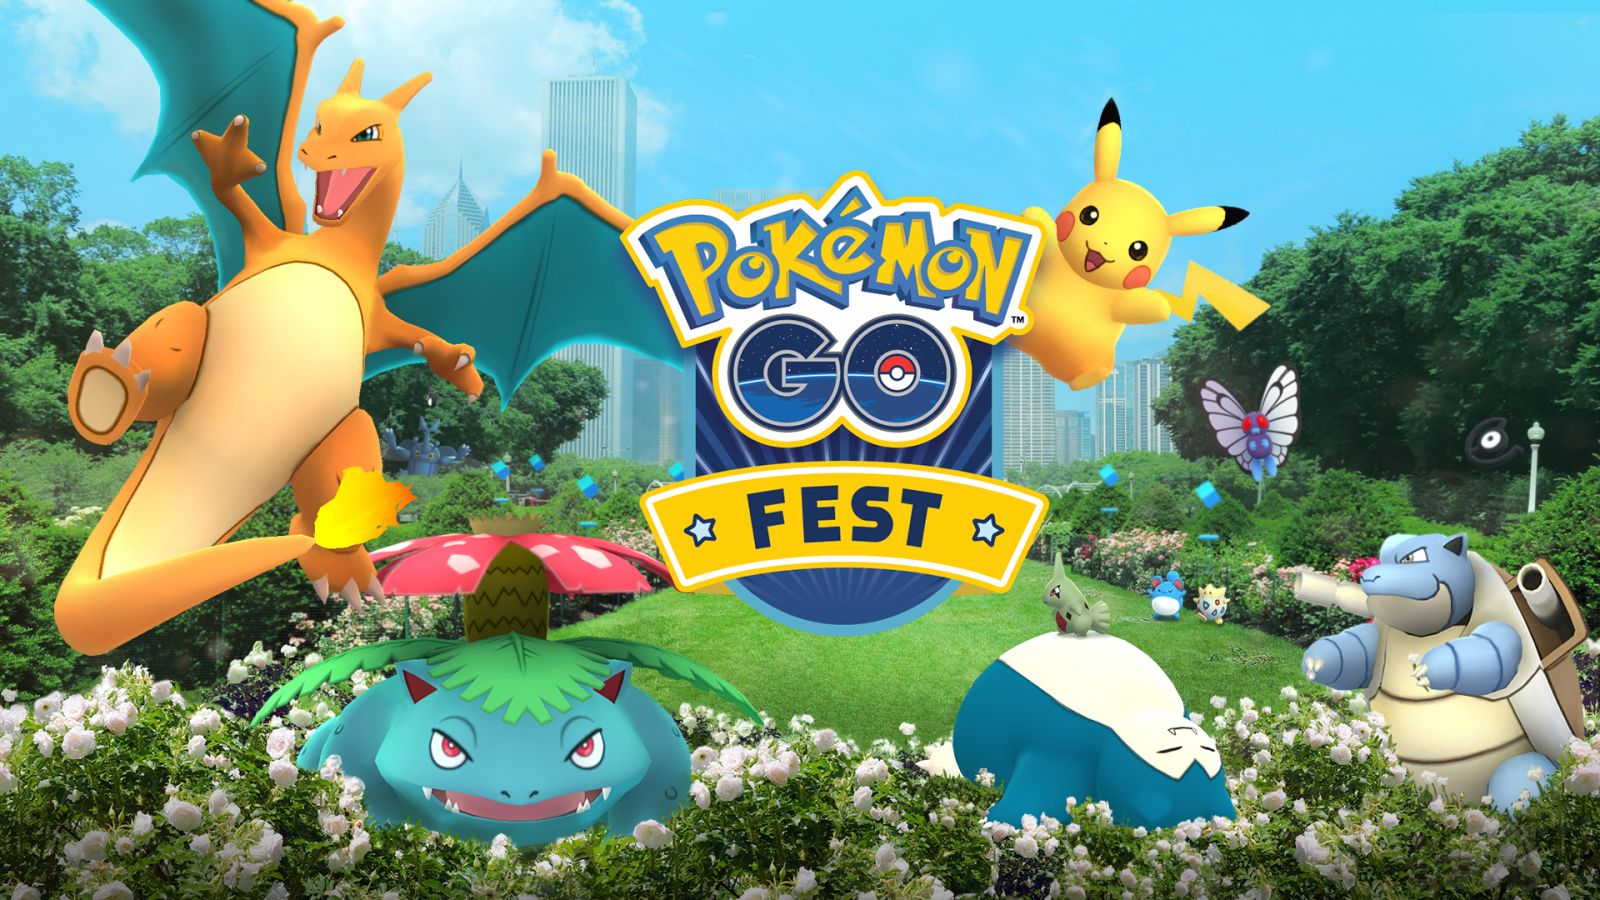 Pokemon GO: The Release Of Legendary Pokemon Brought Another High Selling Date